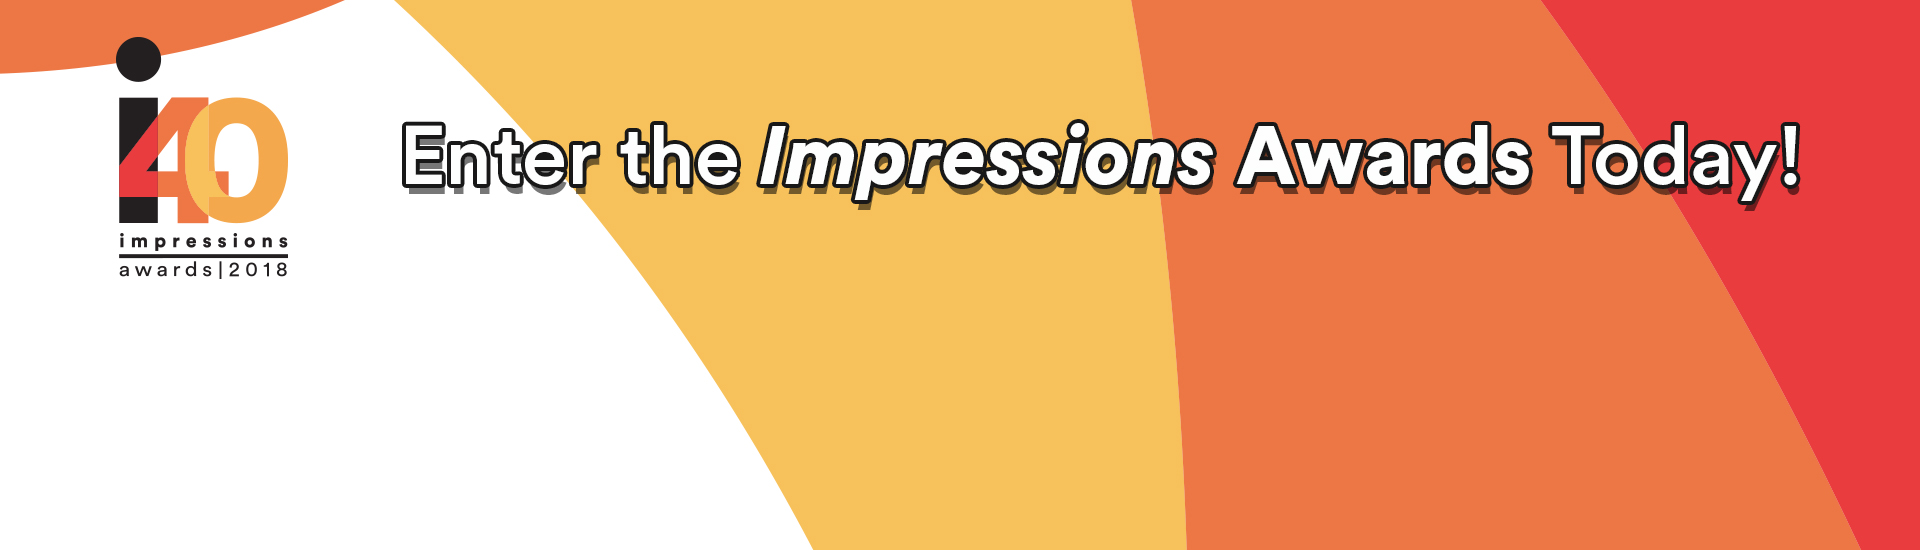 <h2><a href='https://www.impressionsmagazine.com/news/industry/enter-the-2018-impressions-awards-new-prizes-announced/' style='color: inherit; text-decoration:none;font:inherit;'>Enter the 40th Annual Impressions Awards!</a> <hr></h2><p>  <a href='https://www.impressionsmagazine.com/news/industry/enter-the-2018-impressions-awards-new-prizes-announced/' style='color: inherit; text-decoration:none; font-weight:700;font-size:24px;'>The industry&#039;s most prestigious competition now includes new prizes for winners. Click here for more information.</a></p>